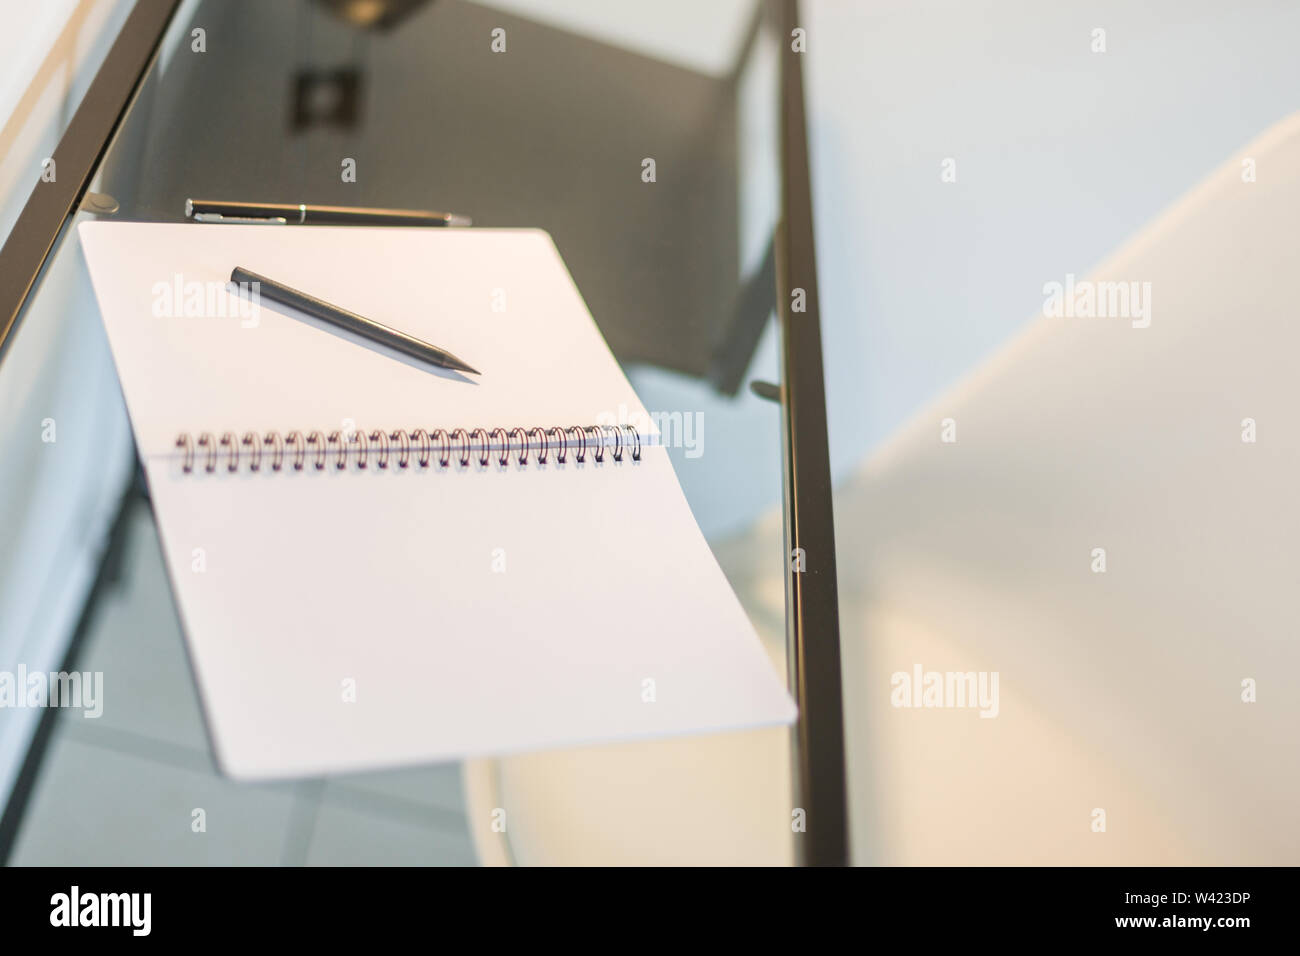 Tilted view of a notebook, pencil and a pen kept on a glass table with a wrought iron frame Stock Photo